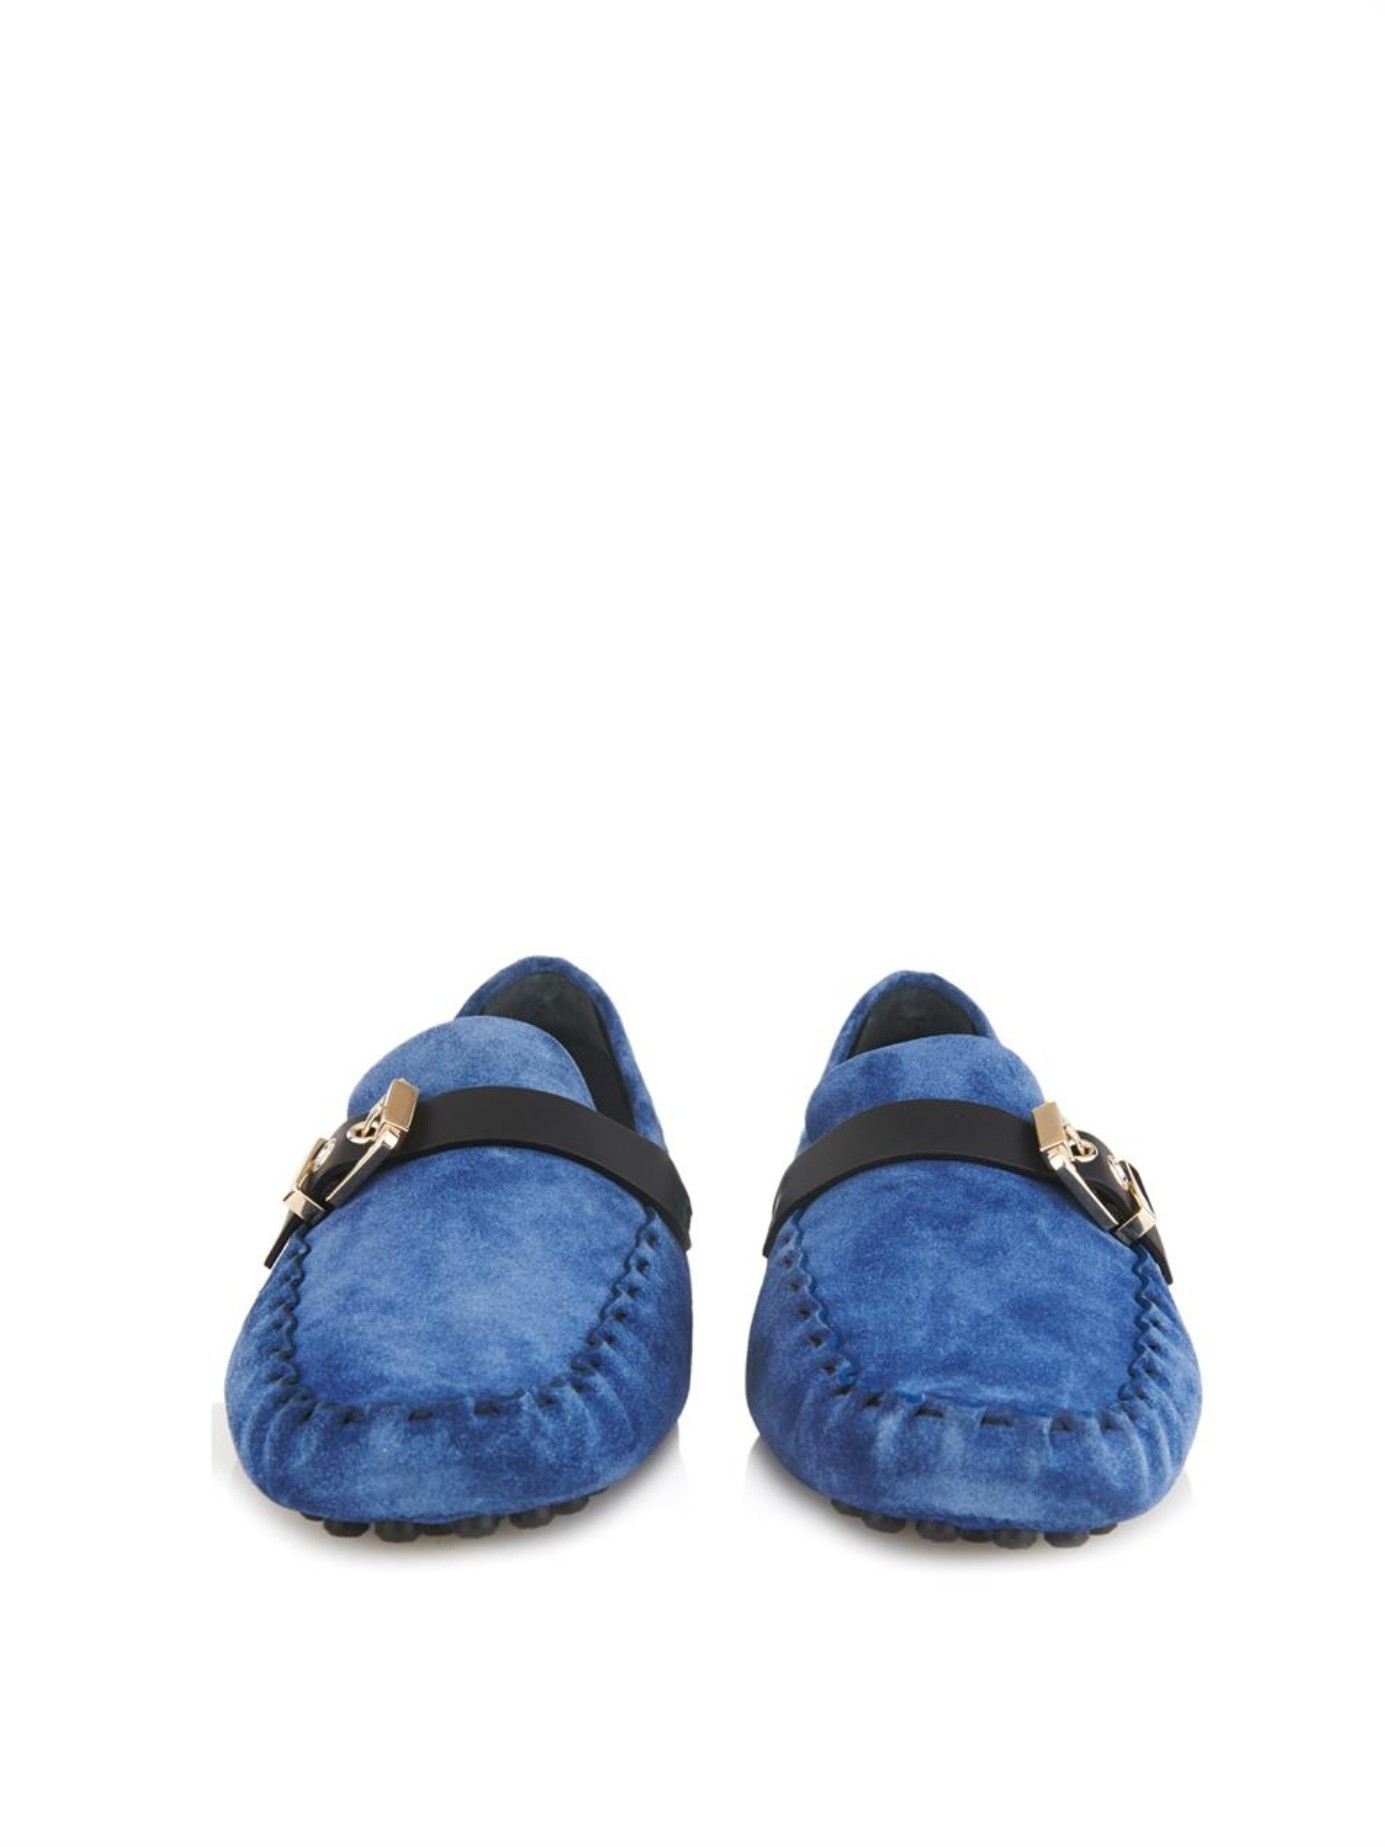 Sergio Rossi Suede Leather-strap Driving Shoes in Blue for Men